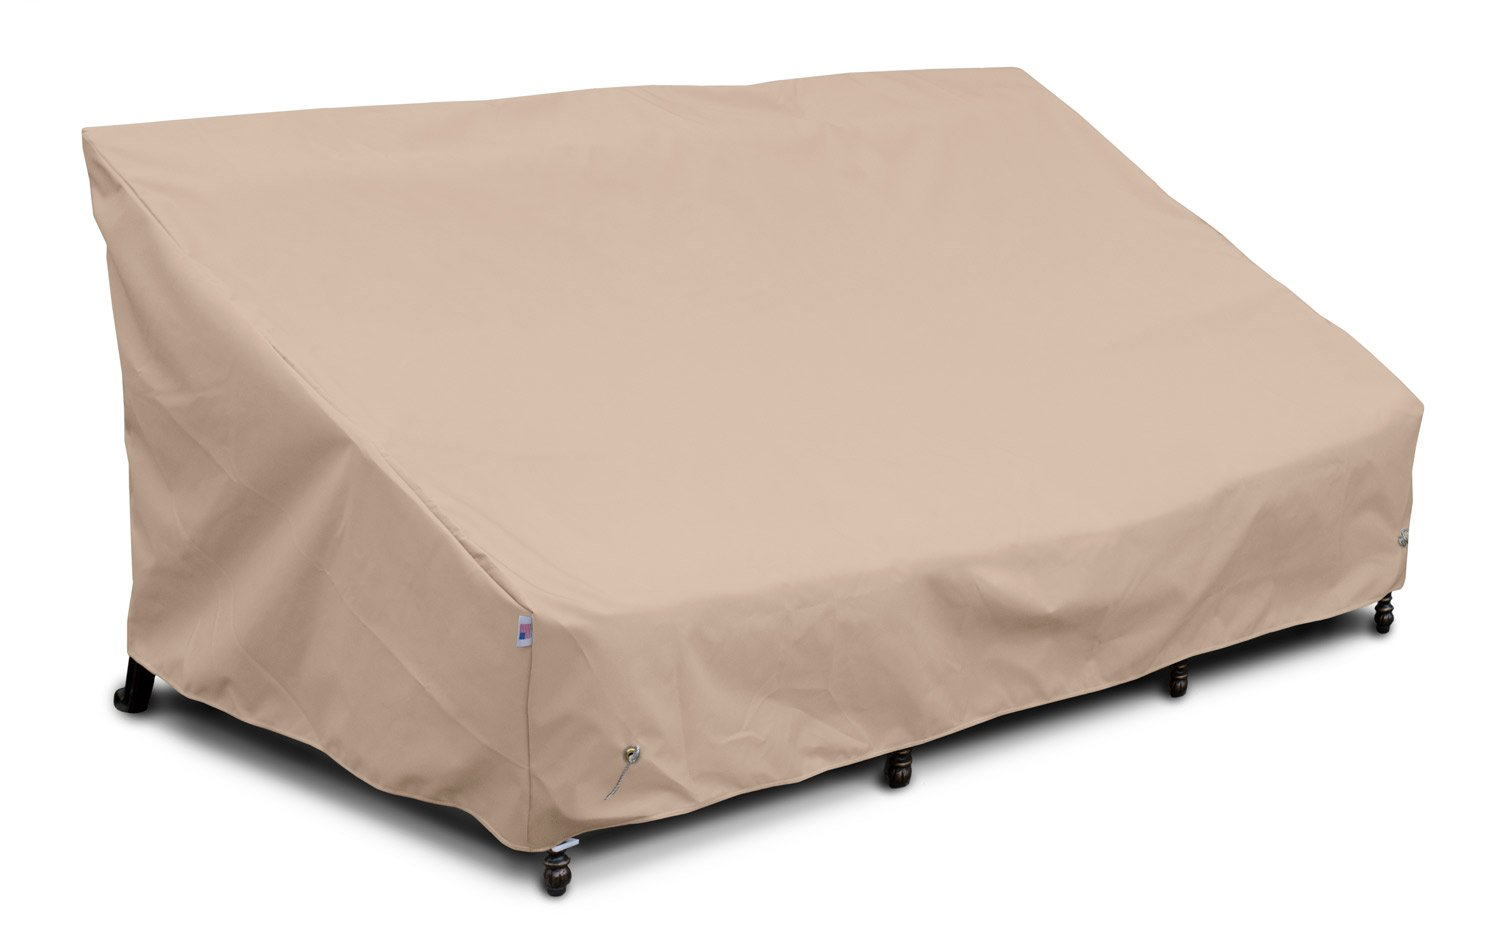 KoverRoos Weathermax 47450 Sofa Cover, 65-Inch Width by 35-Inch Diameter by 35-Inch Height, Toast